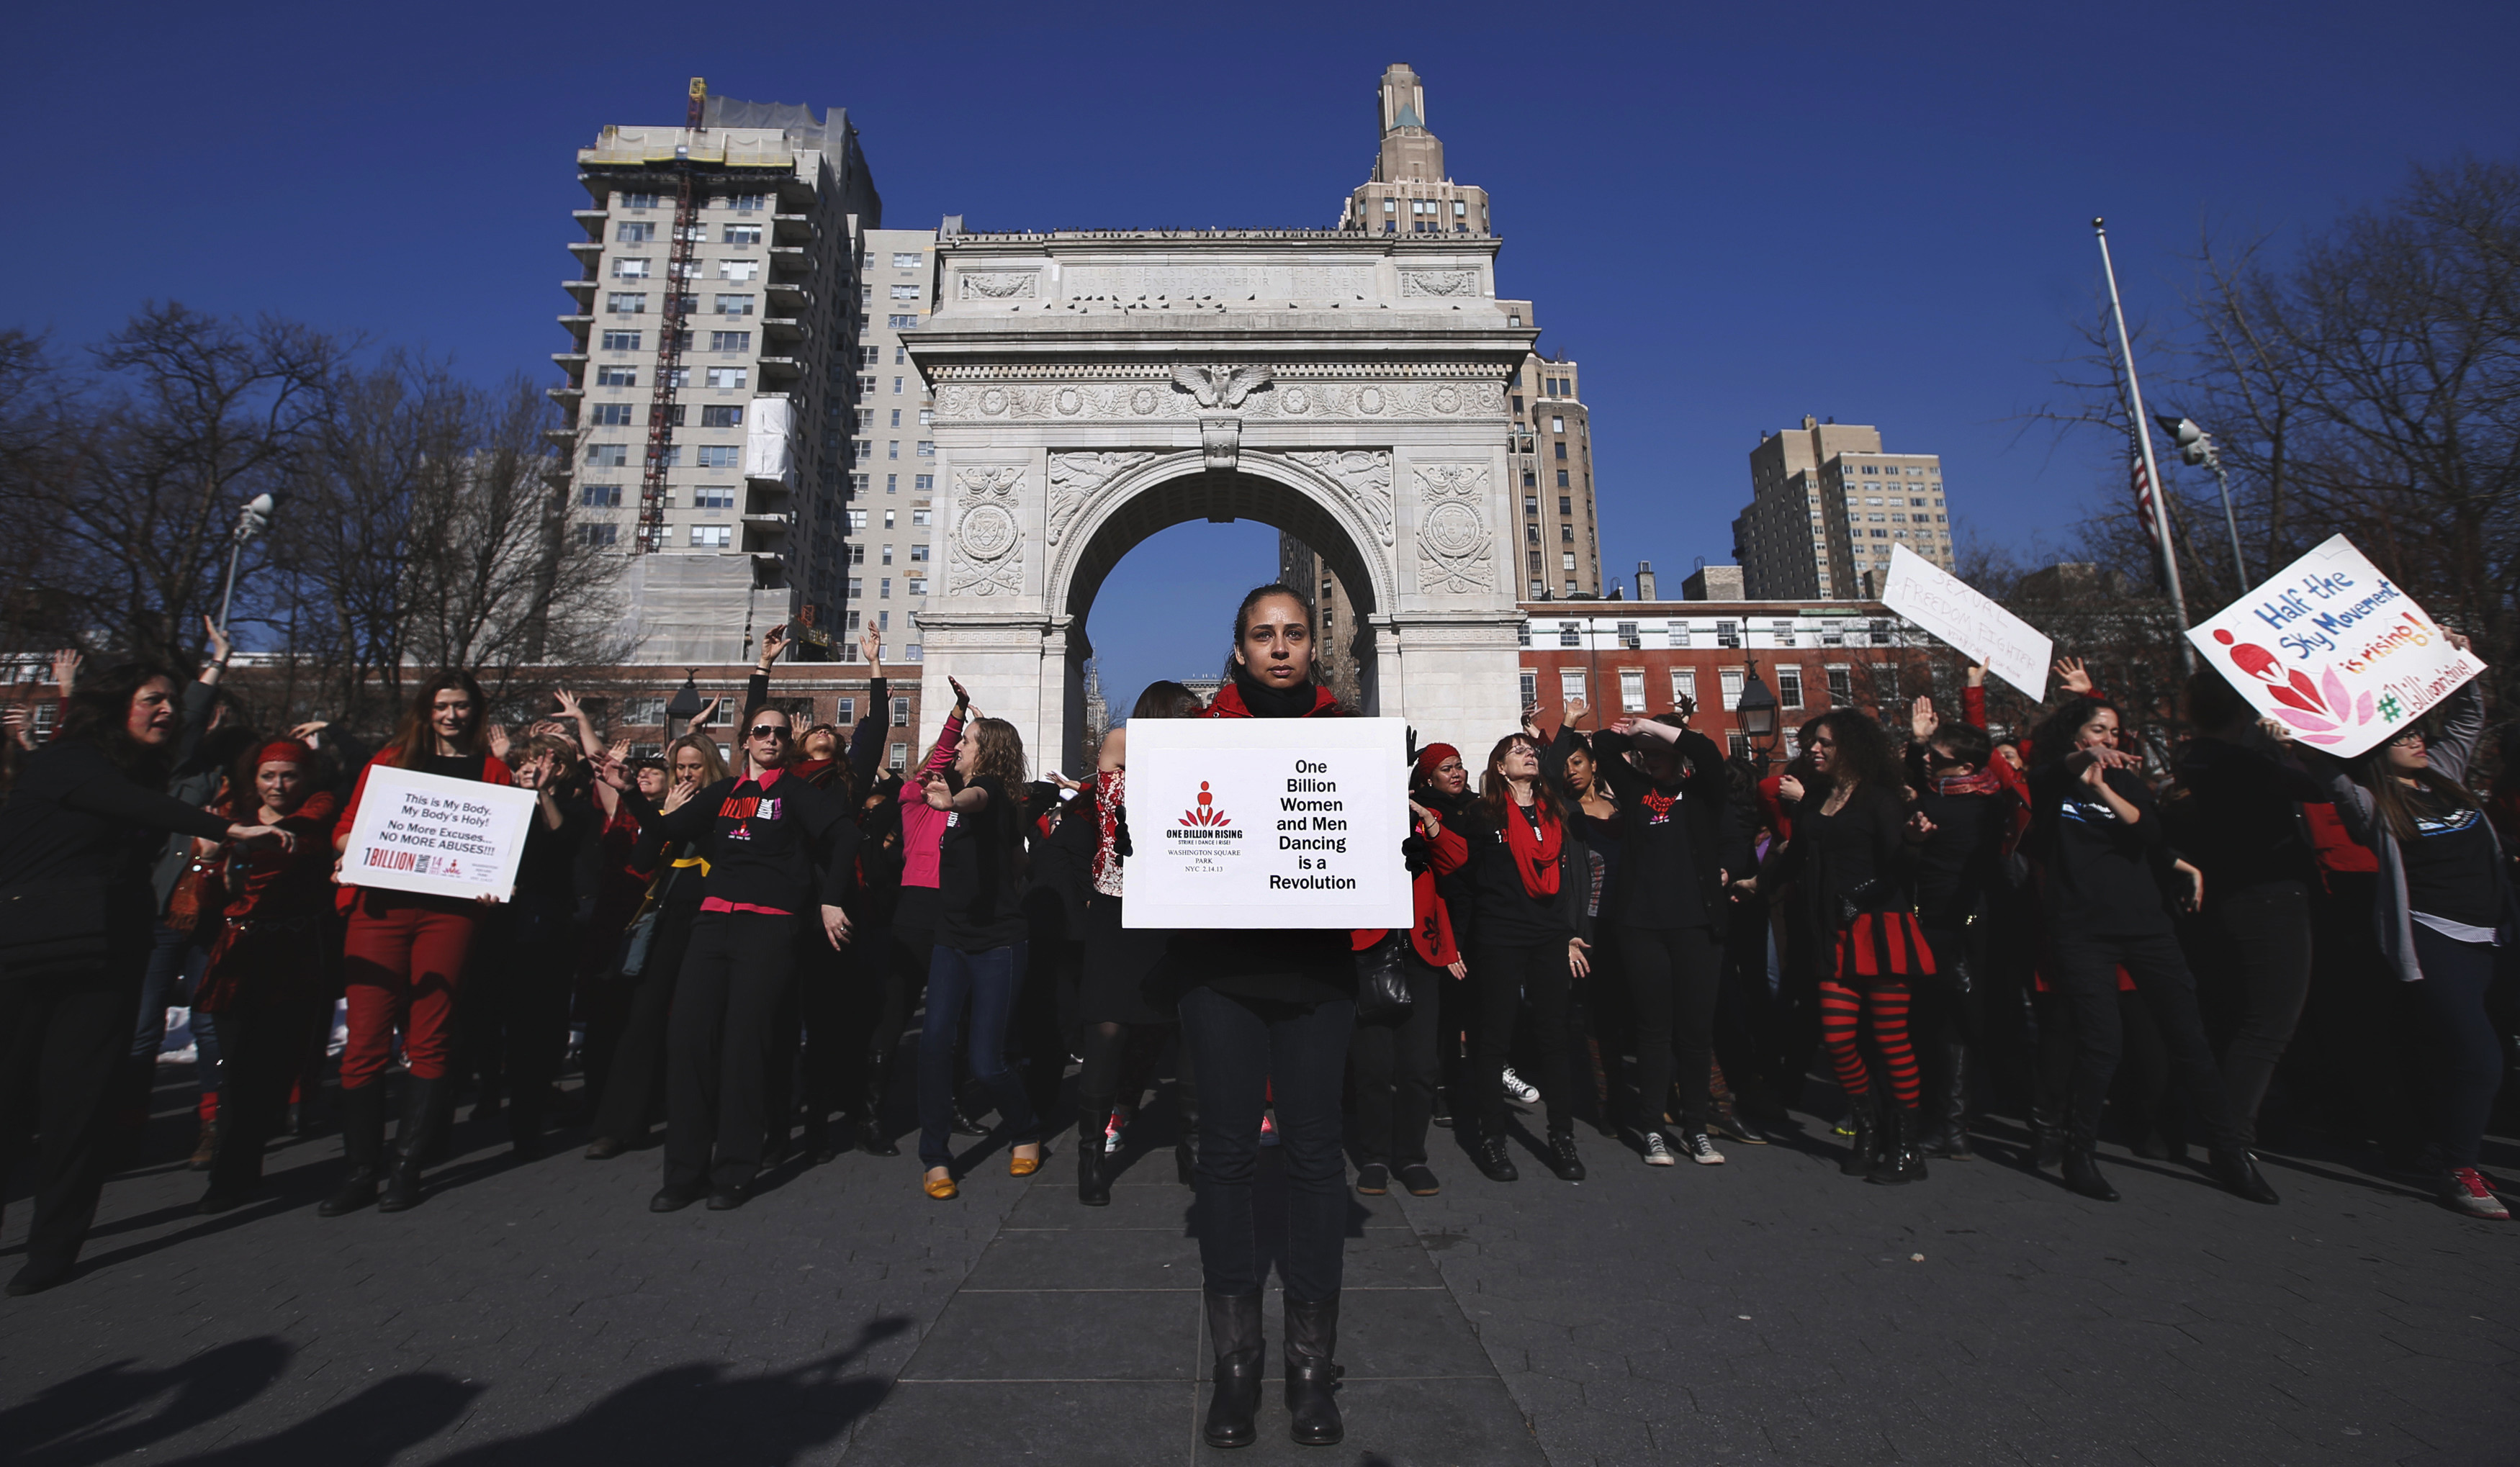 Protesters in New York denounce violence against women and girls.